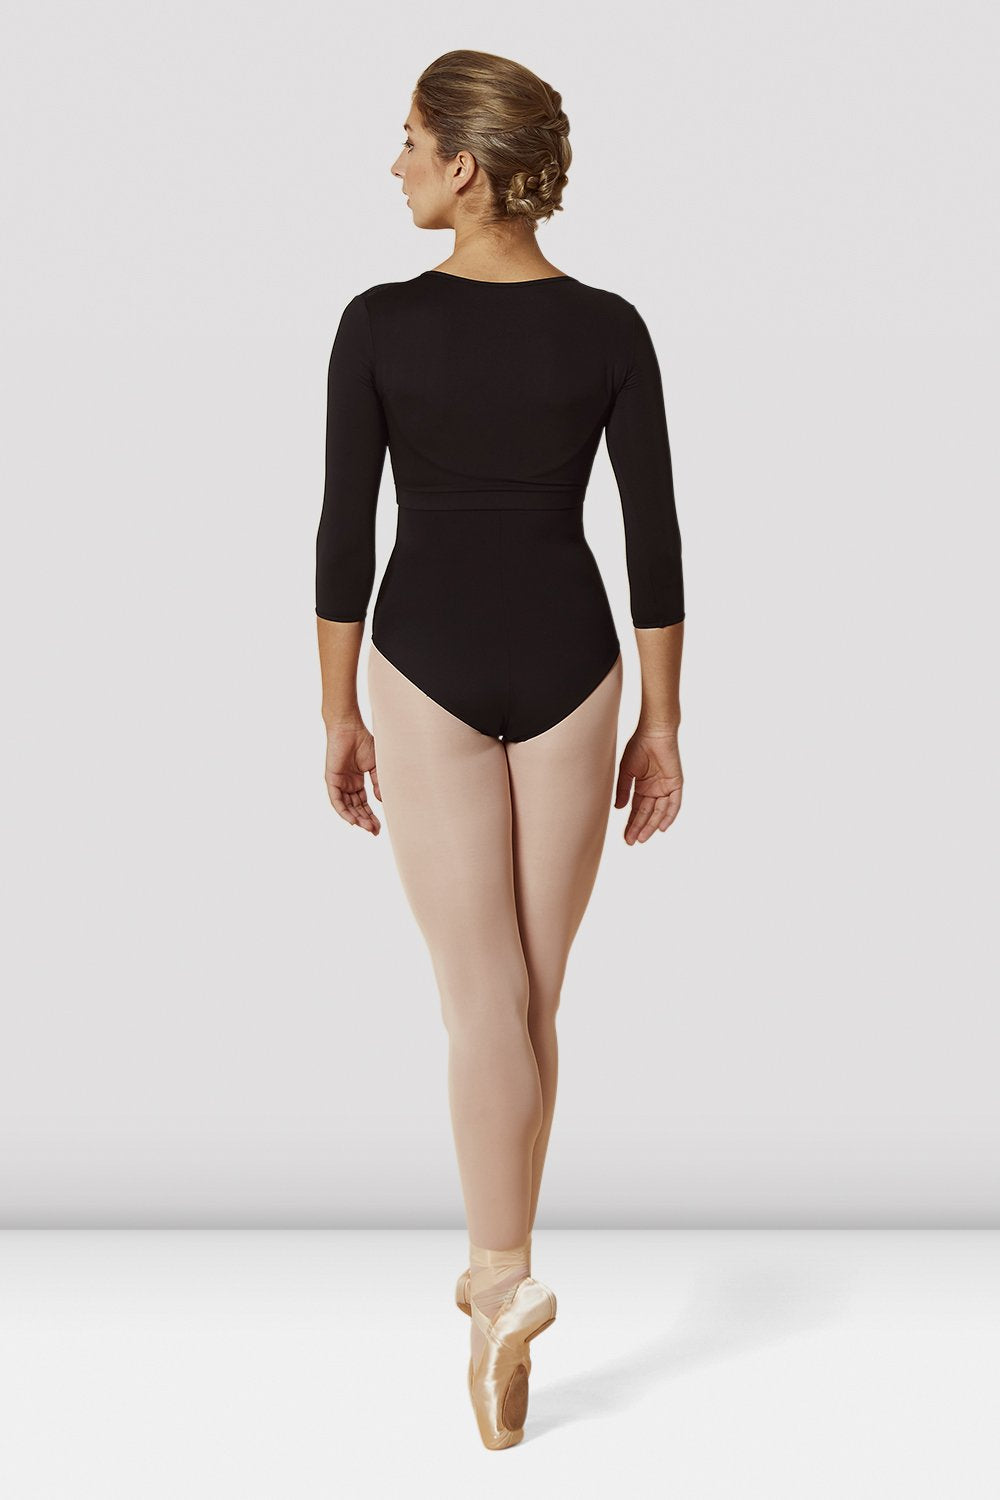 Black Bloch Ladies Lace Bodice Three Quarters Sleeve Wrap Top on female model en pointe in fifth position facing back